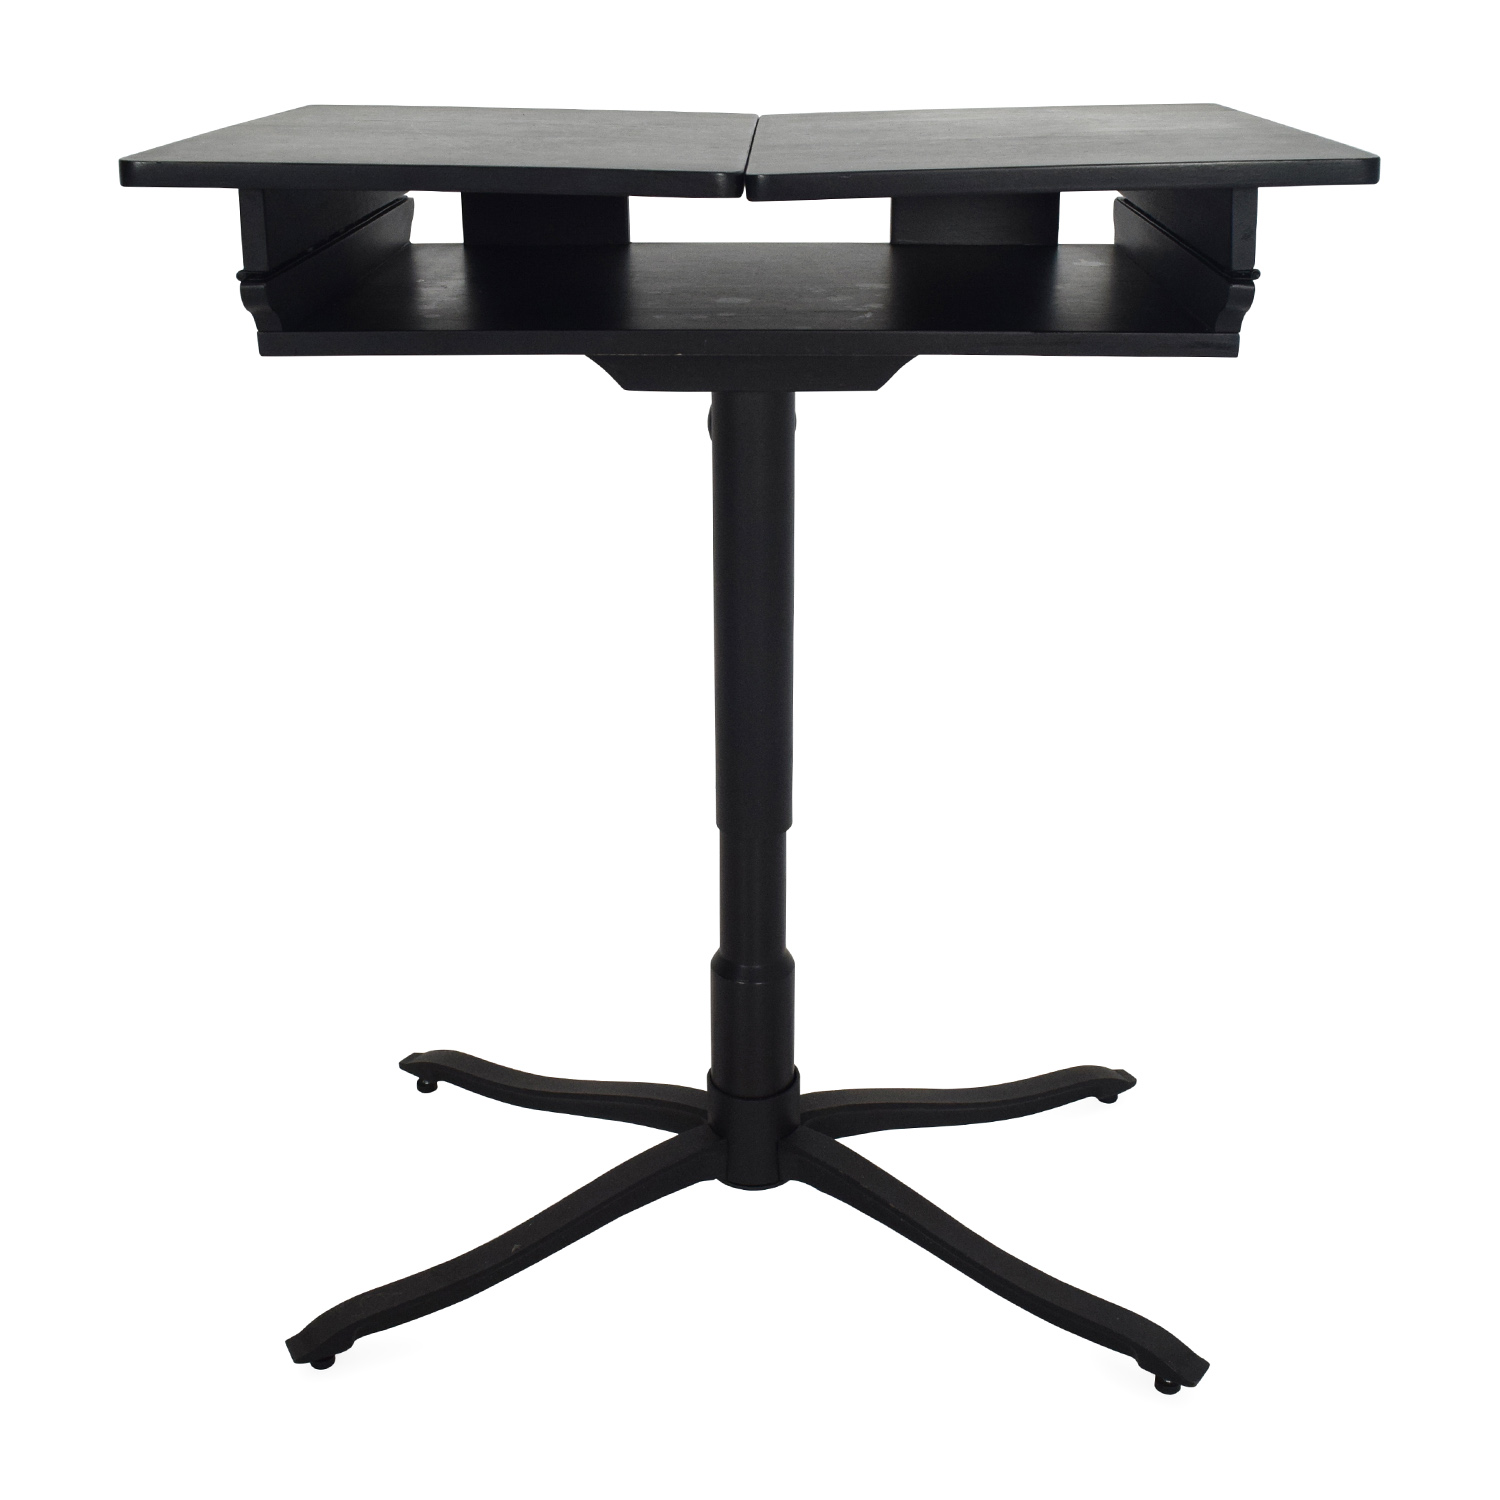 IKEA Foldable Laptop Stand Black